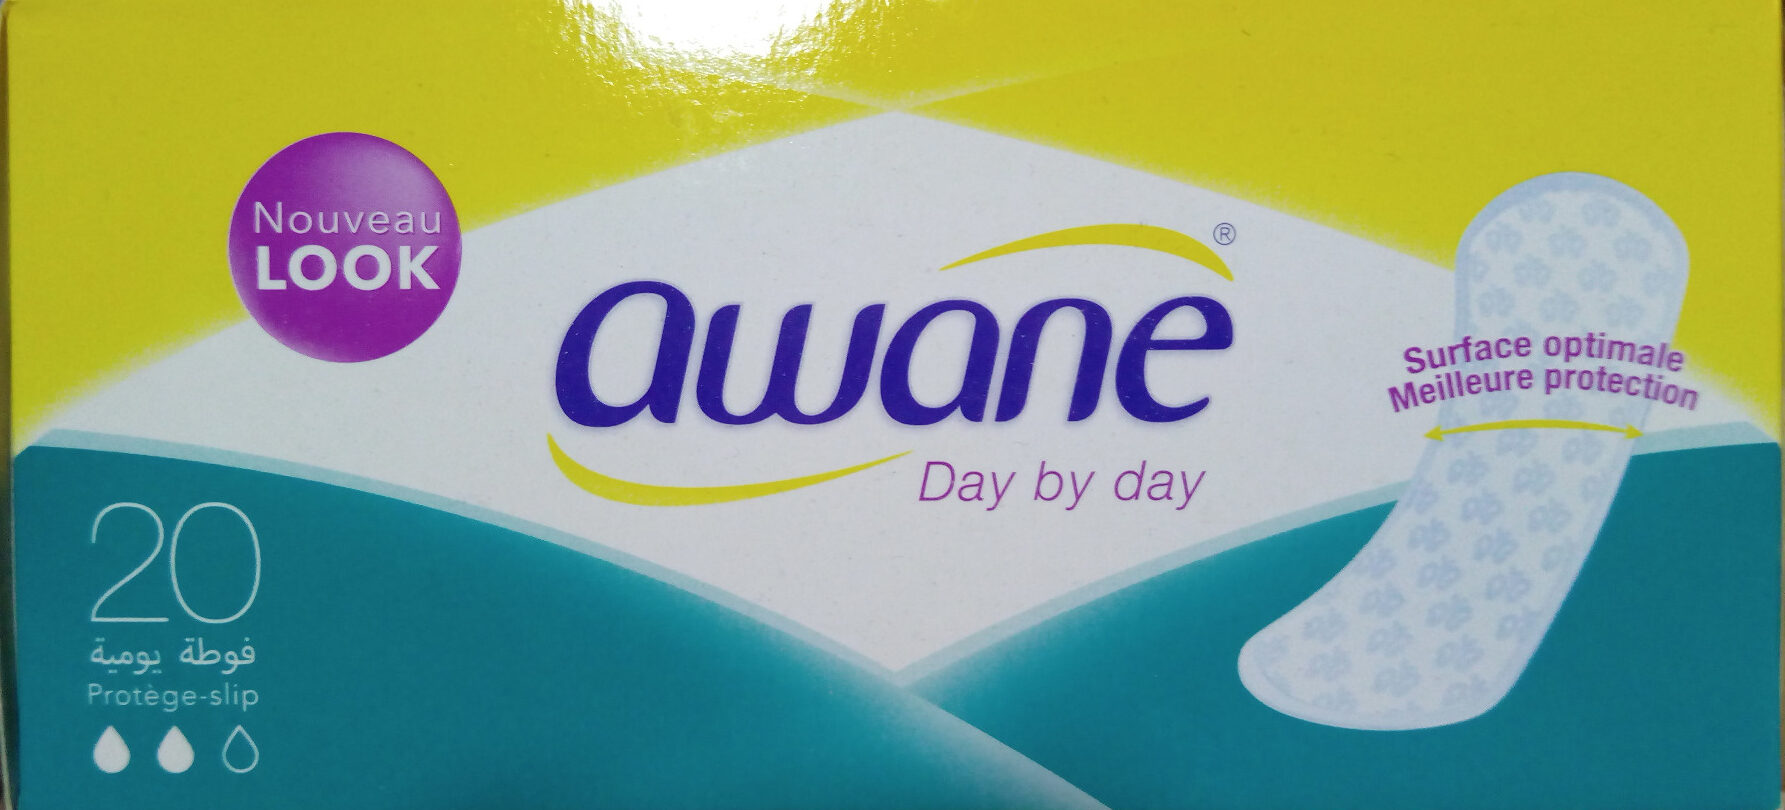 Awane Day by day - Product - fr